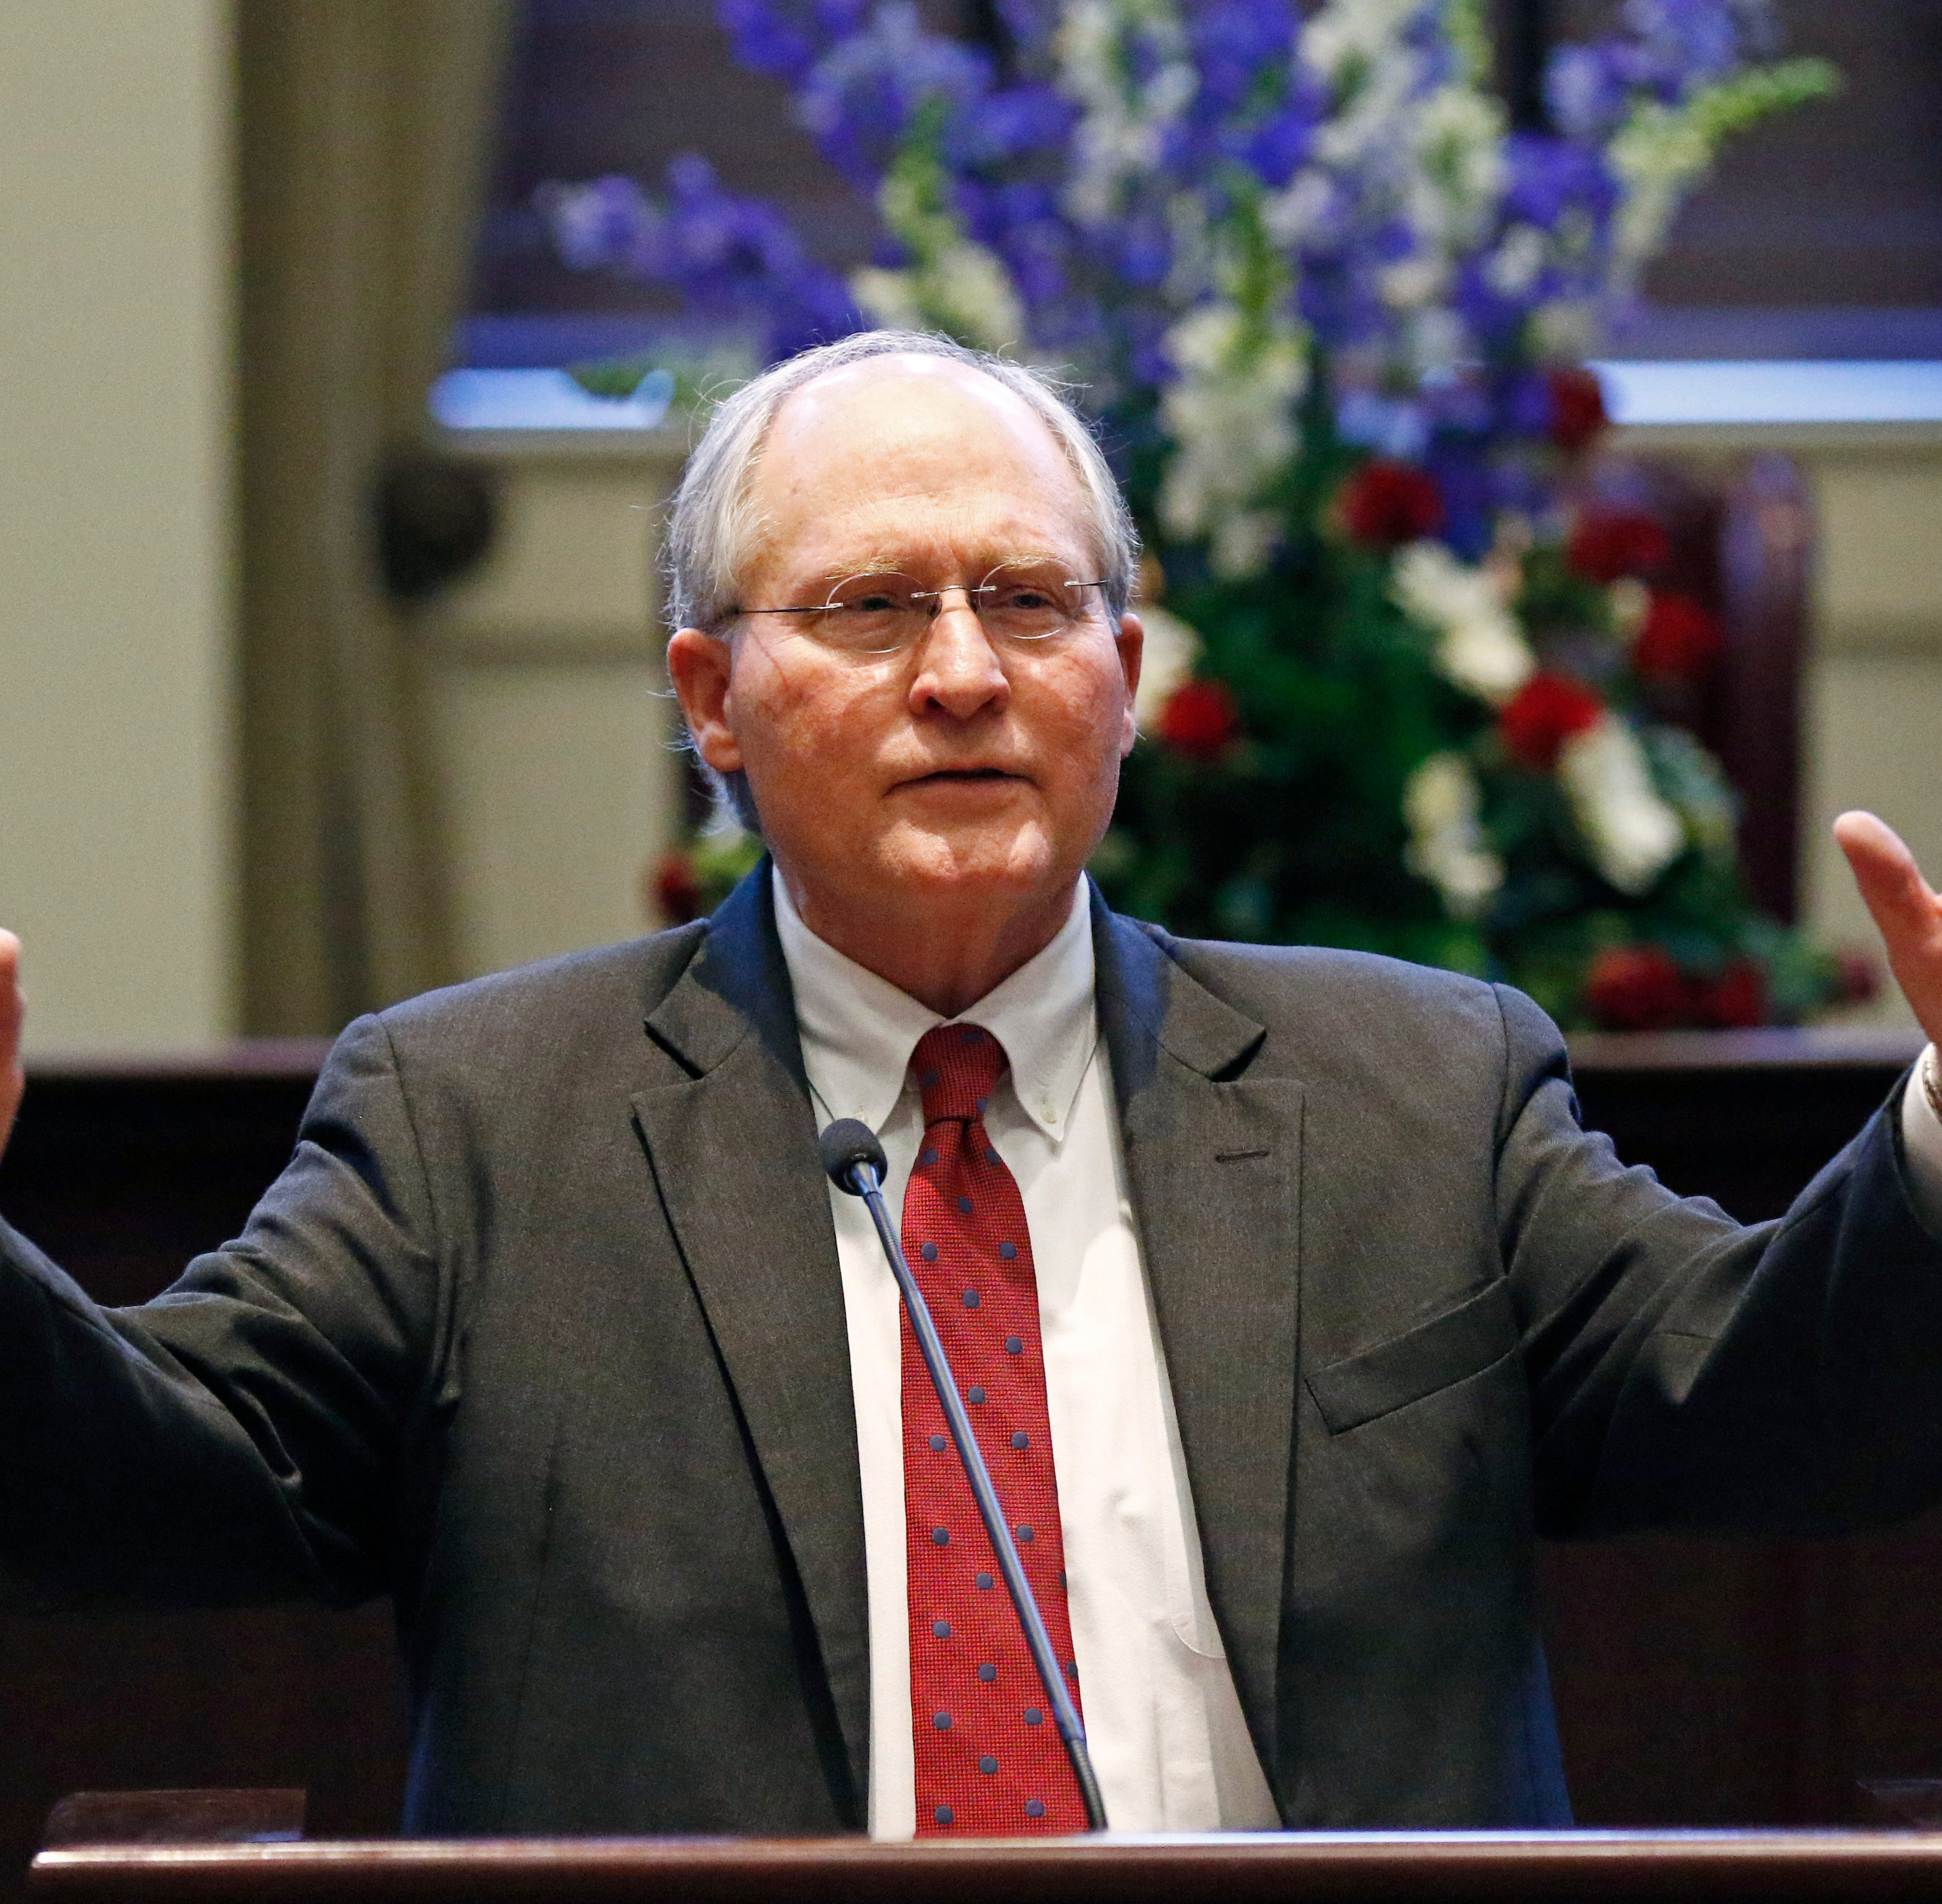 Mississippi Supreme Court Chief Justice William L. Waller Jr., speaks to the audience at his retirement ceremony in the Mississippi Supreme Court chambers in Jackson, Miss., Friday, Jan. 25, 2019. Waller spoke of the accomplishments within the state judicial system during his tenure as a judge. Waller officially retires on January 31 after more than 21 years of service on the Supreme Court and 10 years as Chief Justice. (AP Photo/Rogelio V. Solis)